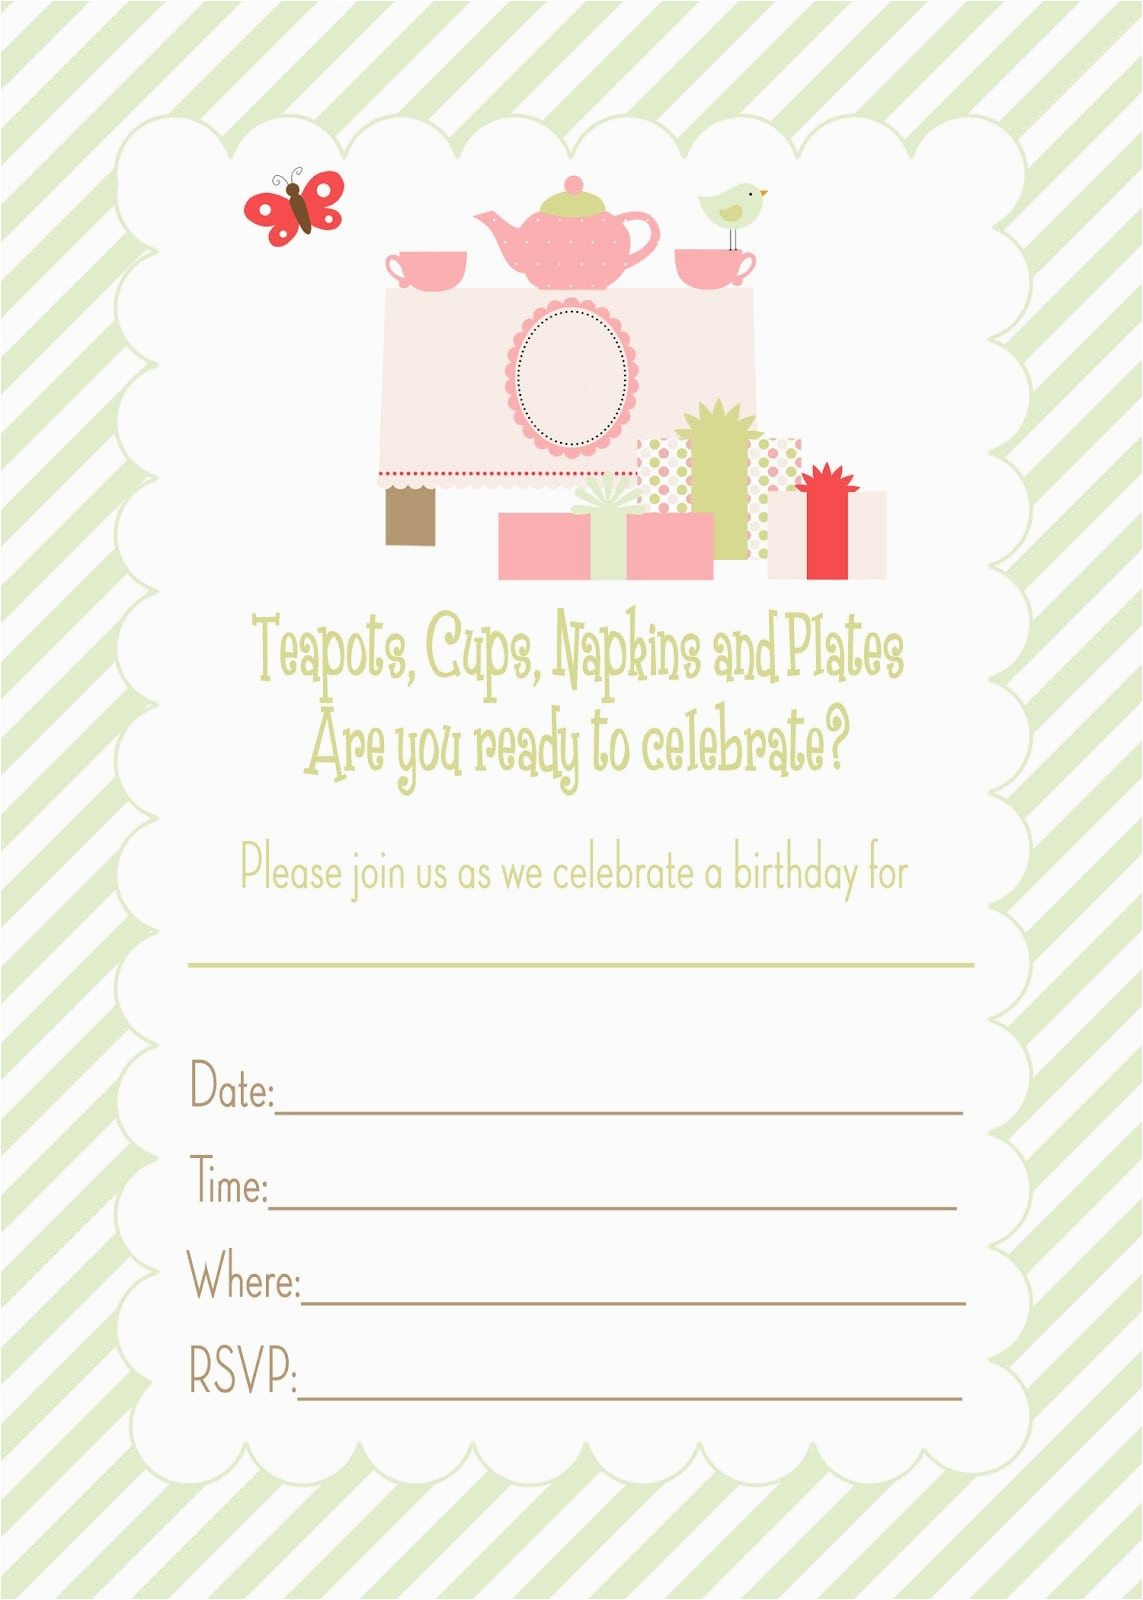 13 Year Old Birthday Party Invitations Invitation Template